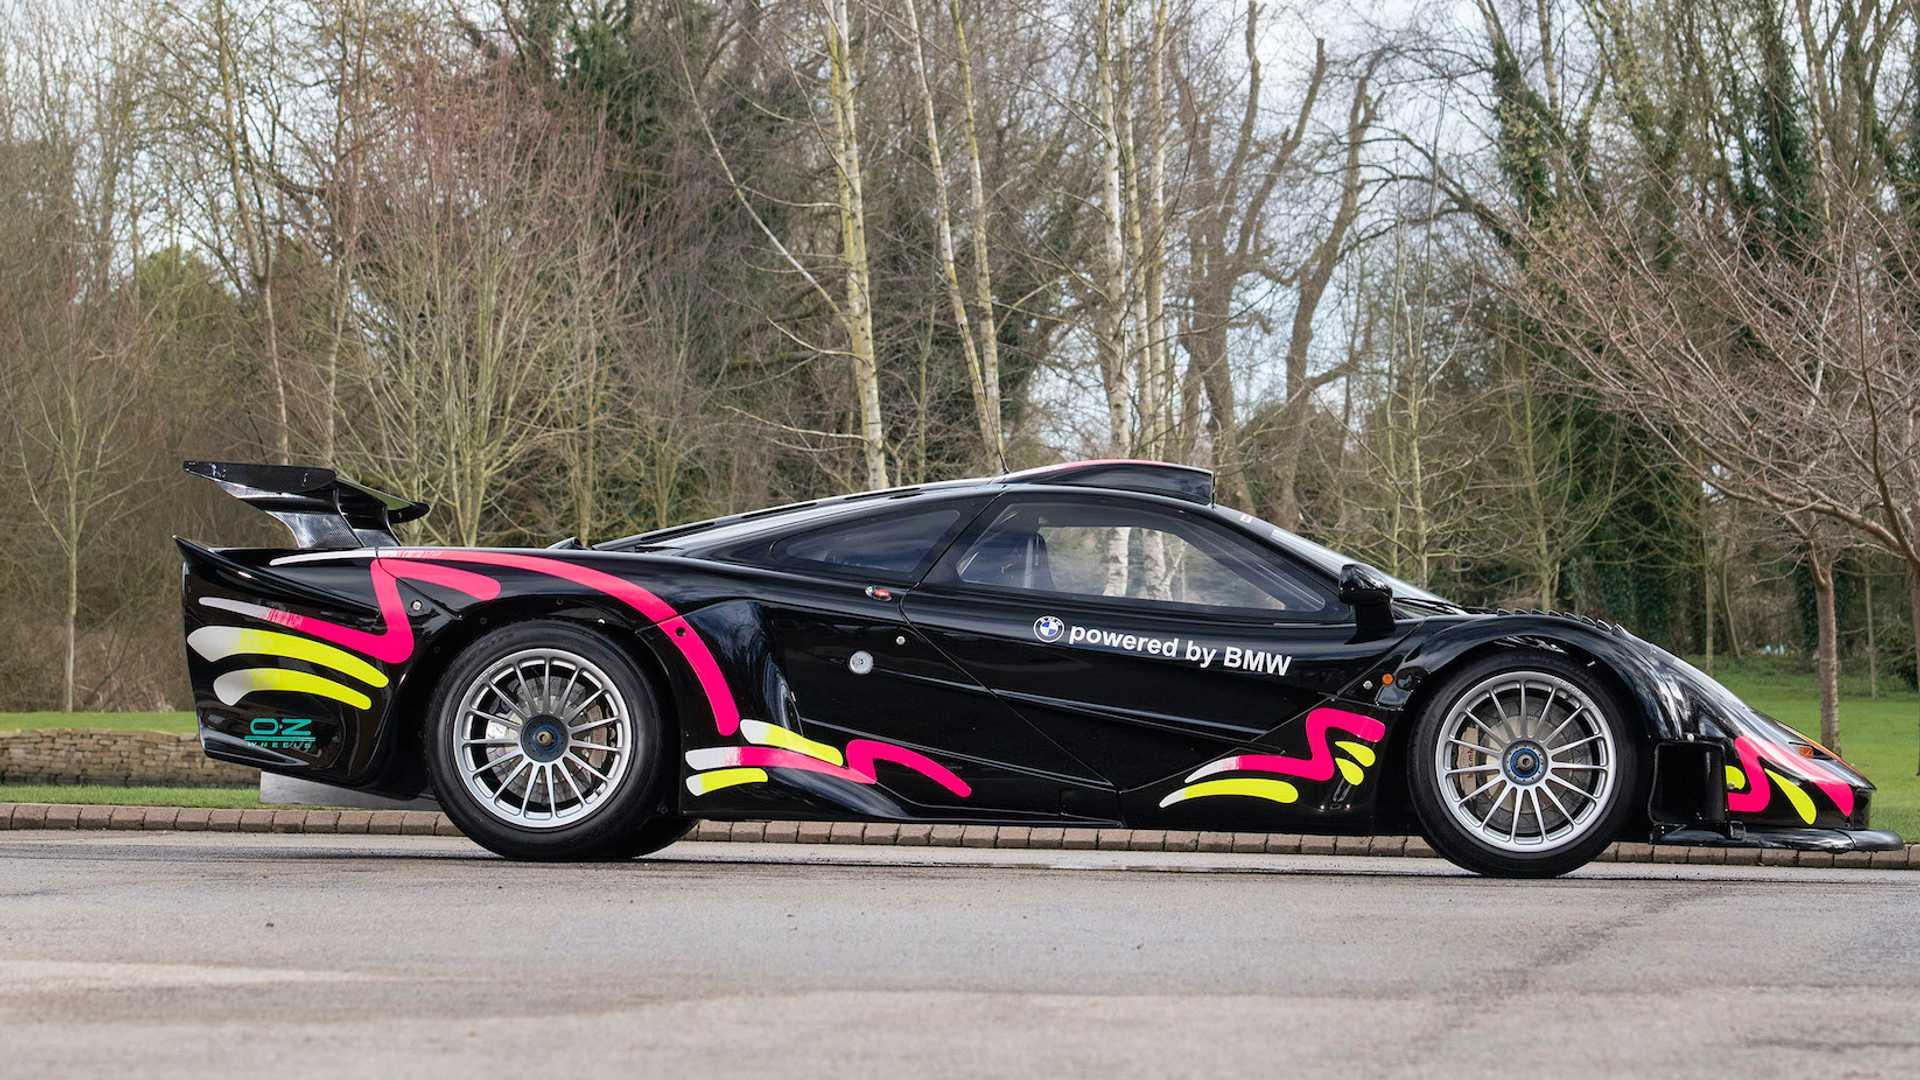 McLaren F1 GTR Longtail Side View